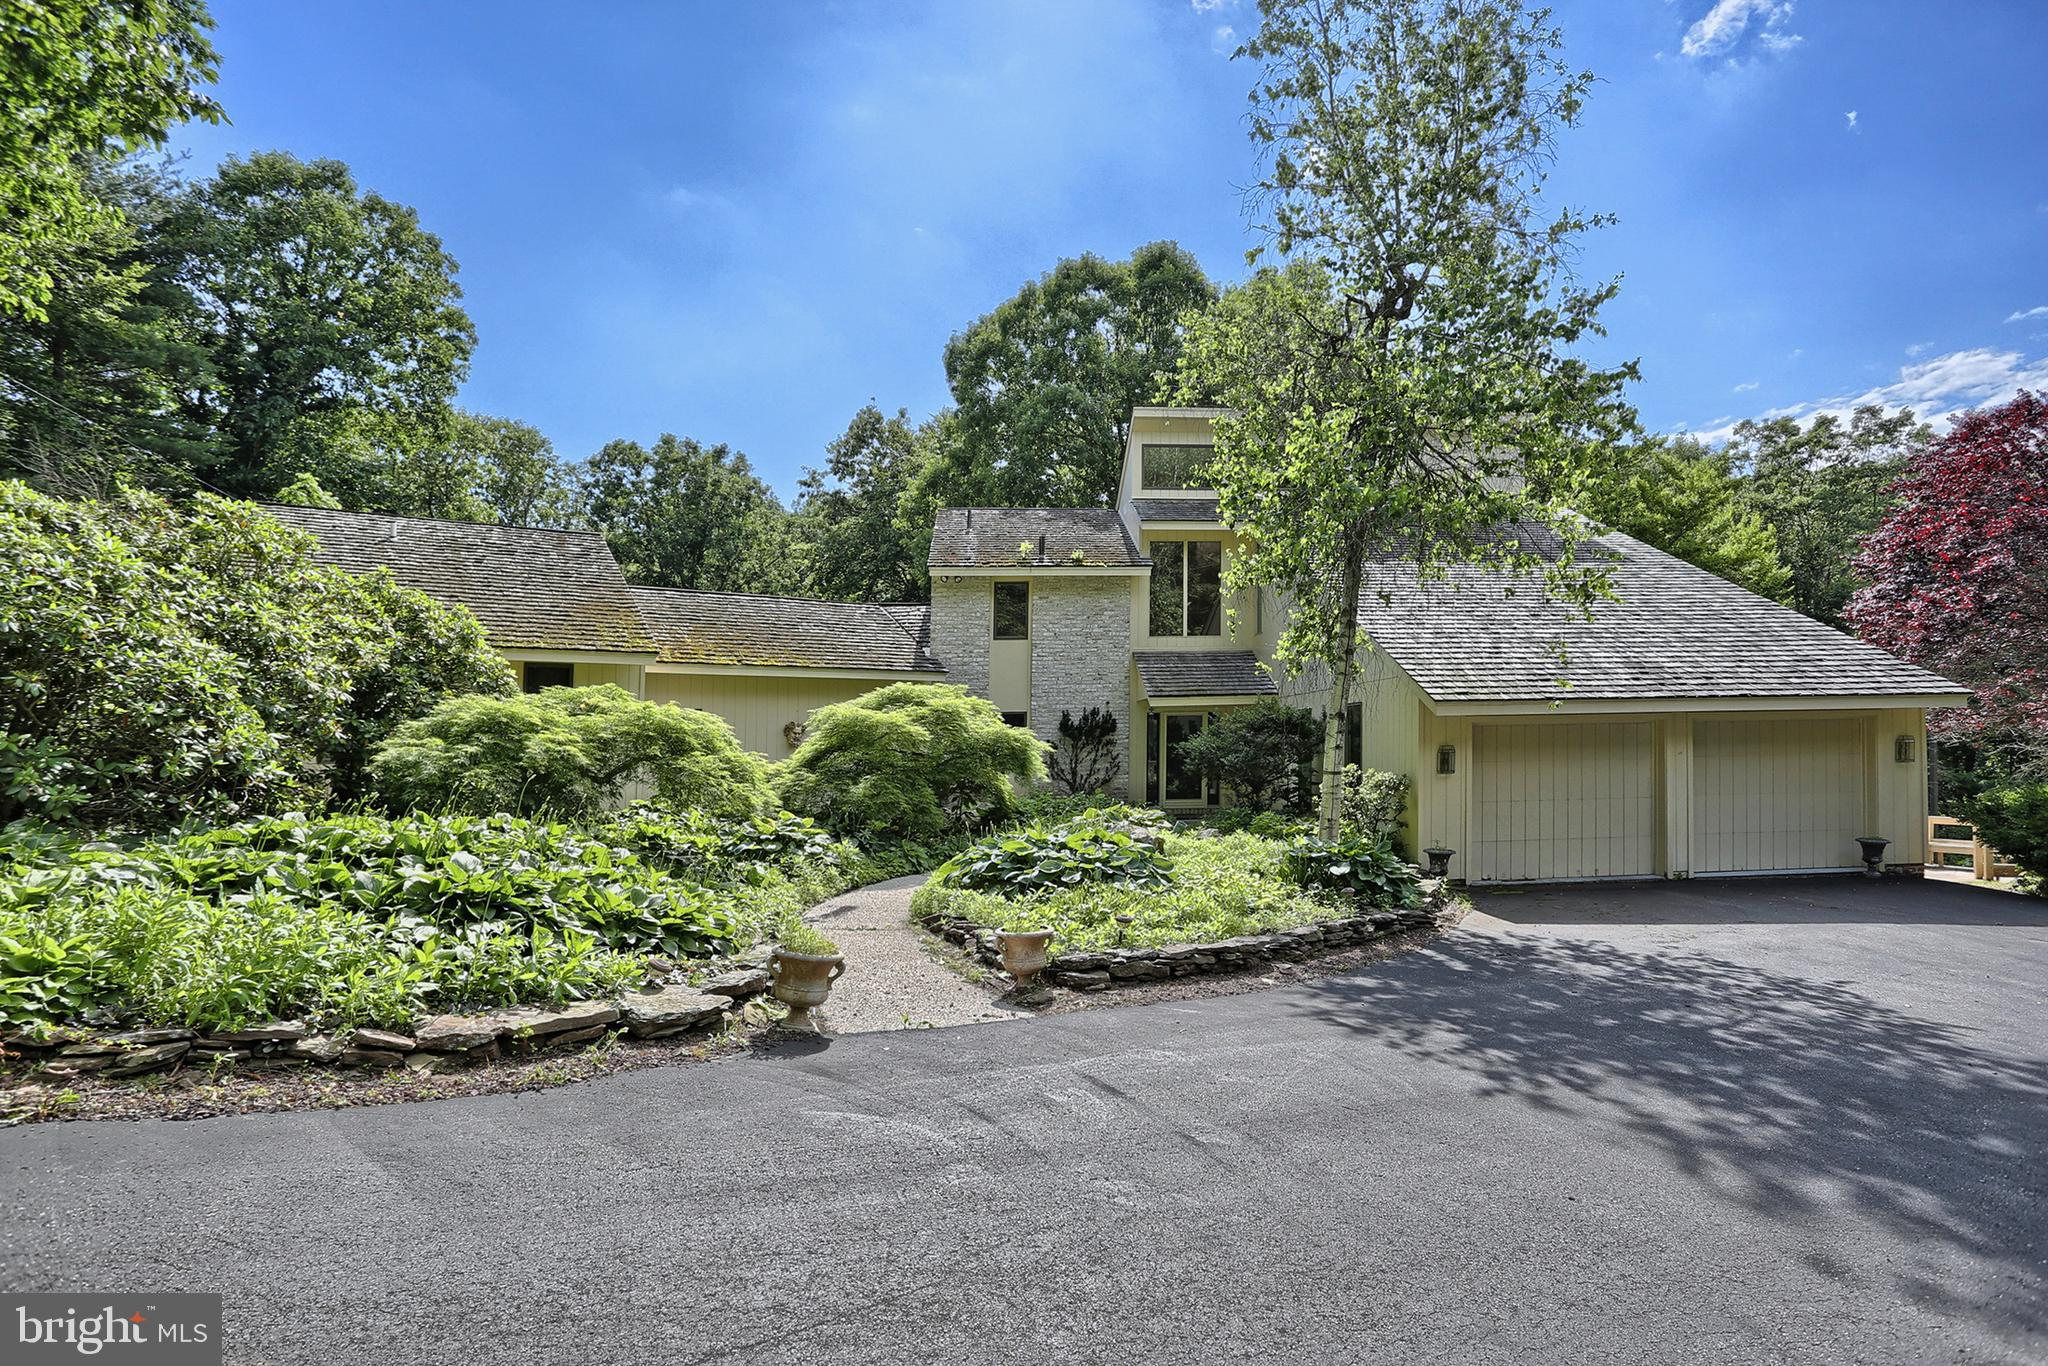 165 DEER HILL ROAD, READING, PA 19607